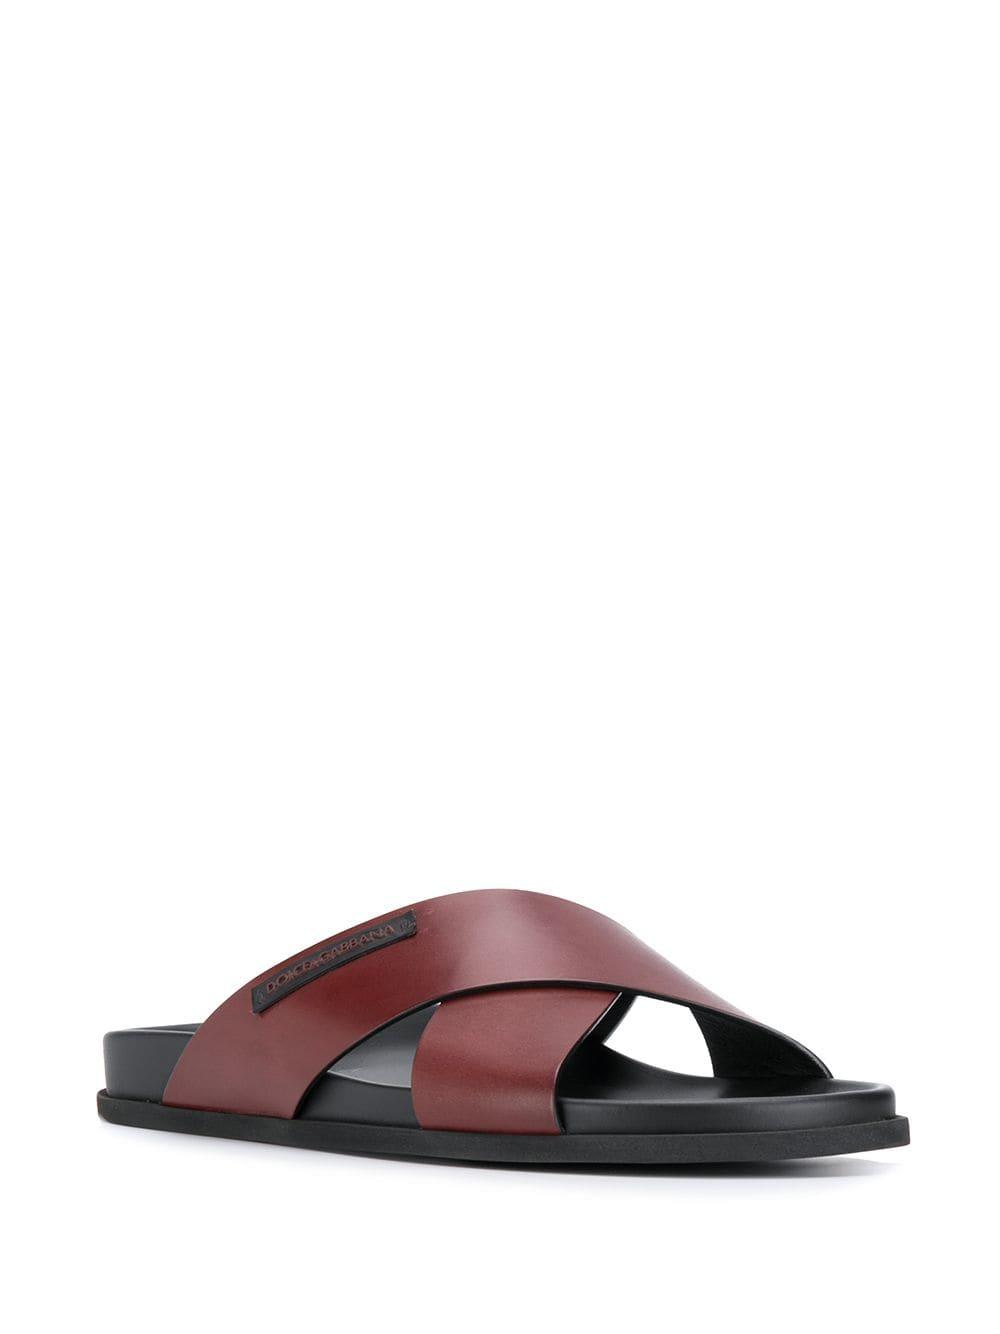 f517f0917 Lyst - Dolce   Gabbana Crossover Strap Sandals in Brown for Men